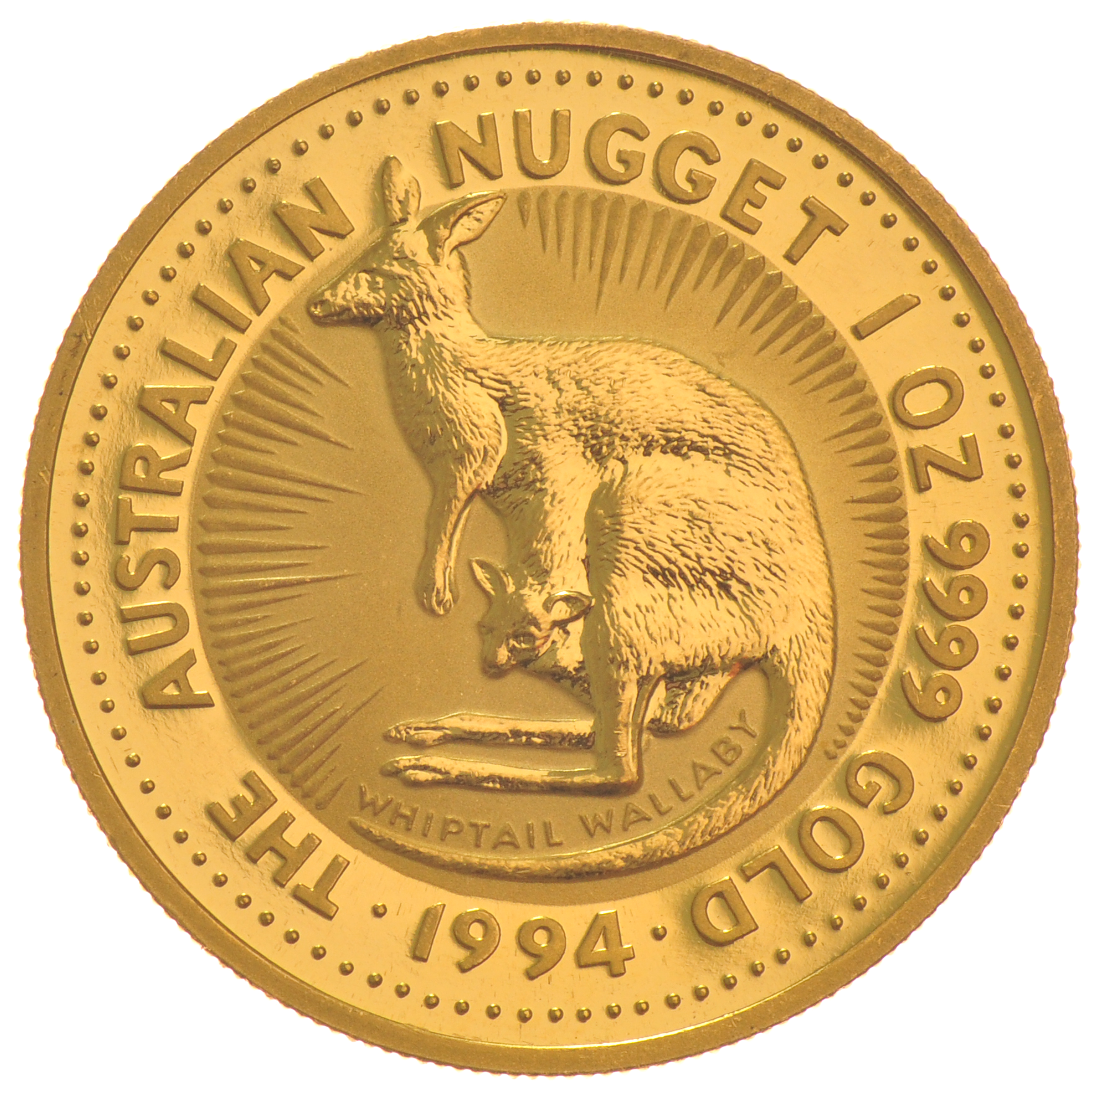 Buy 1994 1oz Gold Australian Nugget Bullionbypost